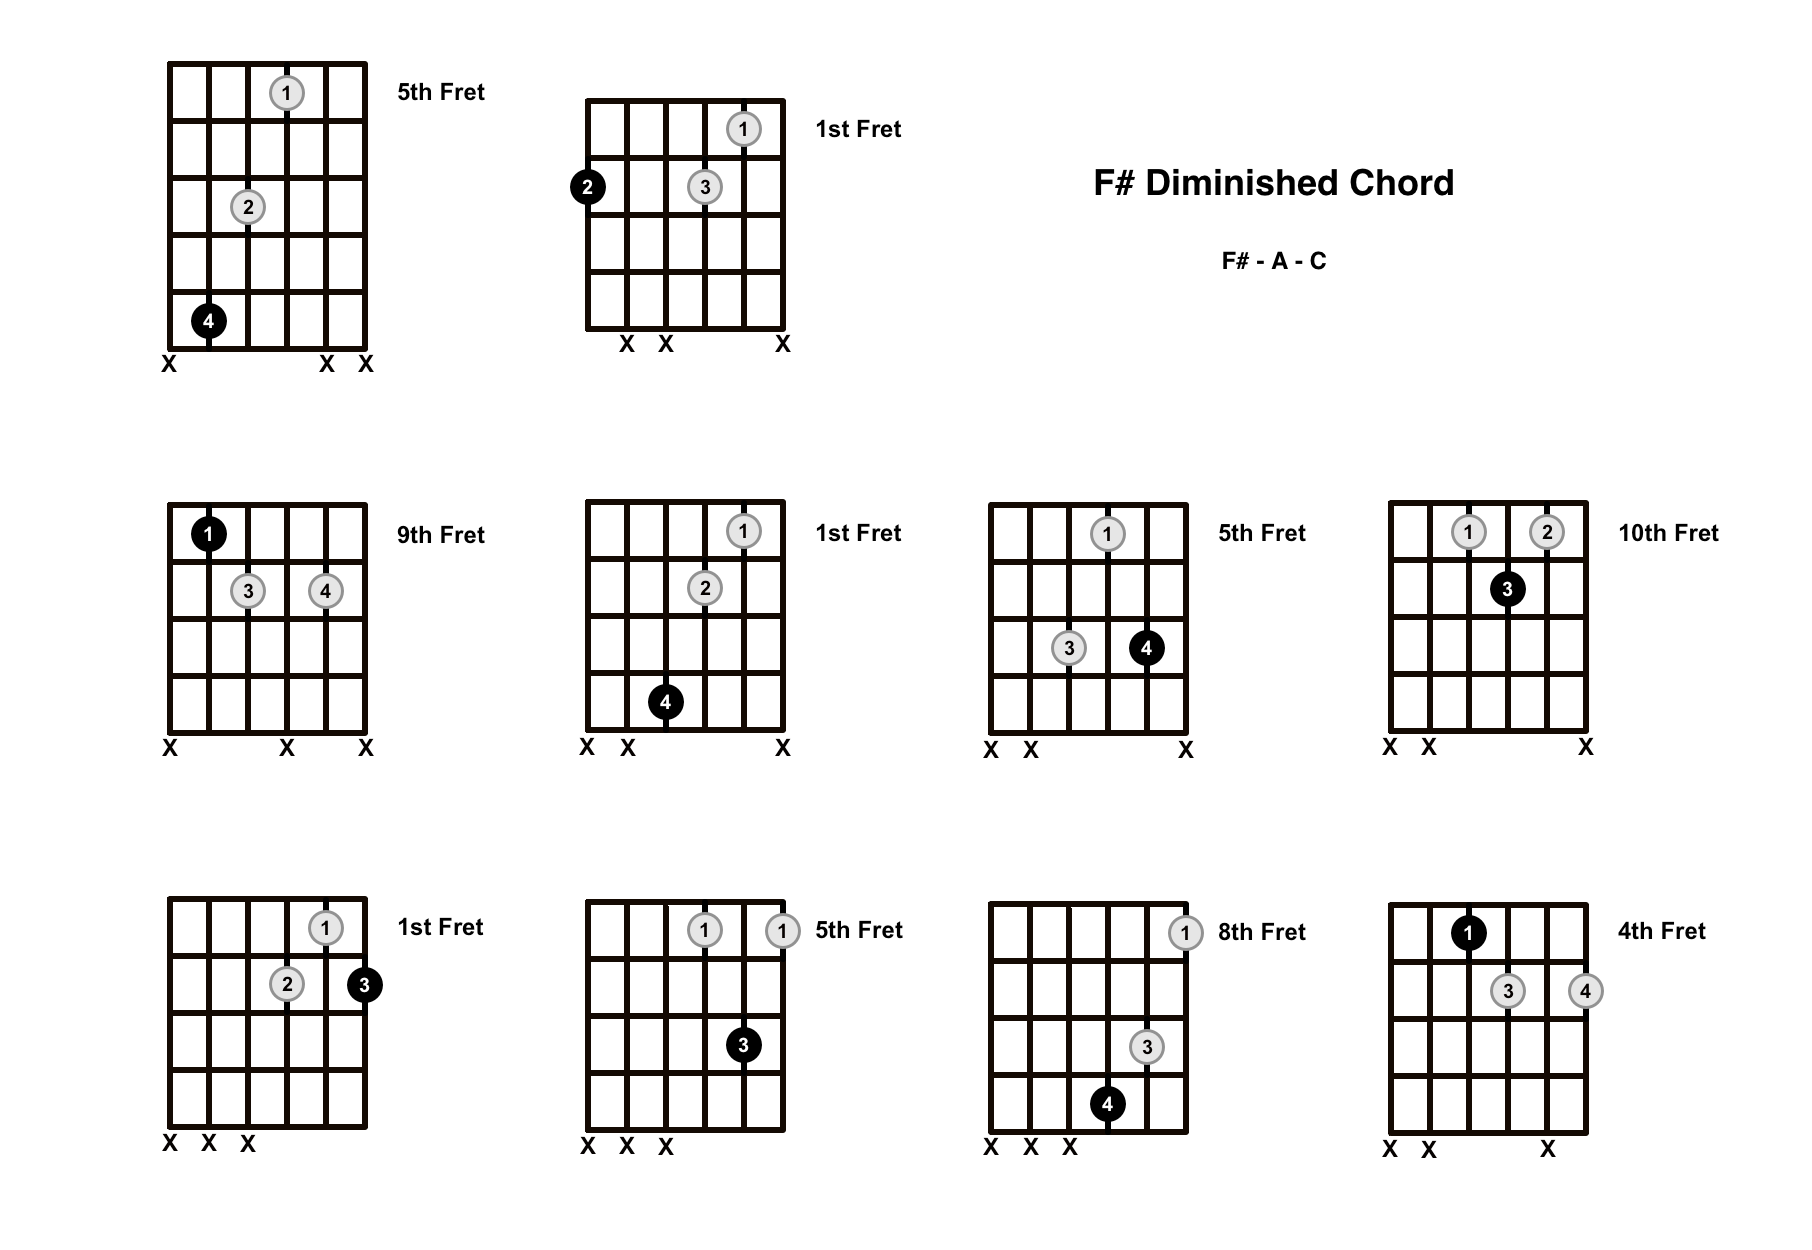 F Sharp Diminished Chord on the Guitar (F# dim) – Diagrams, Finger Positions, Theory